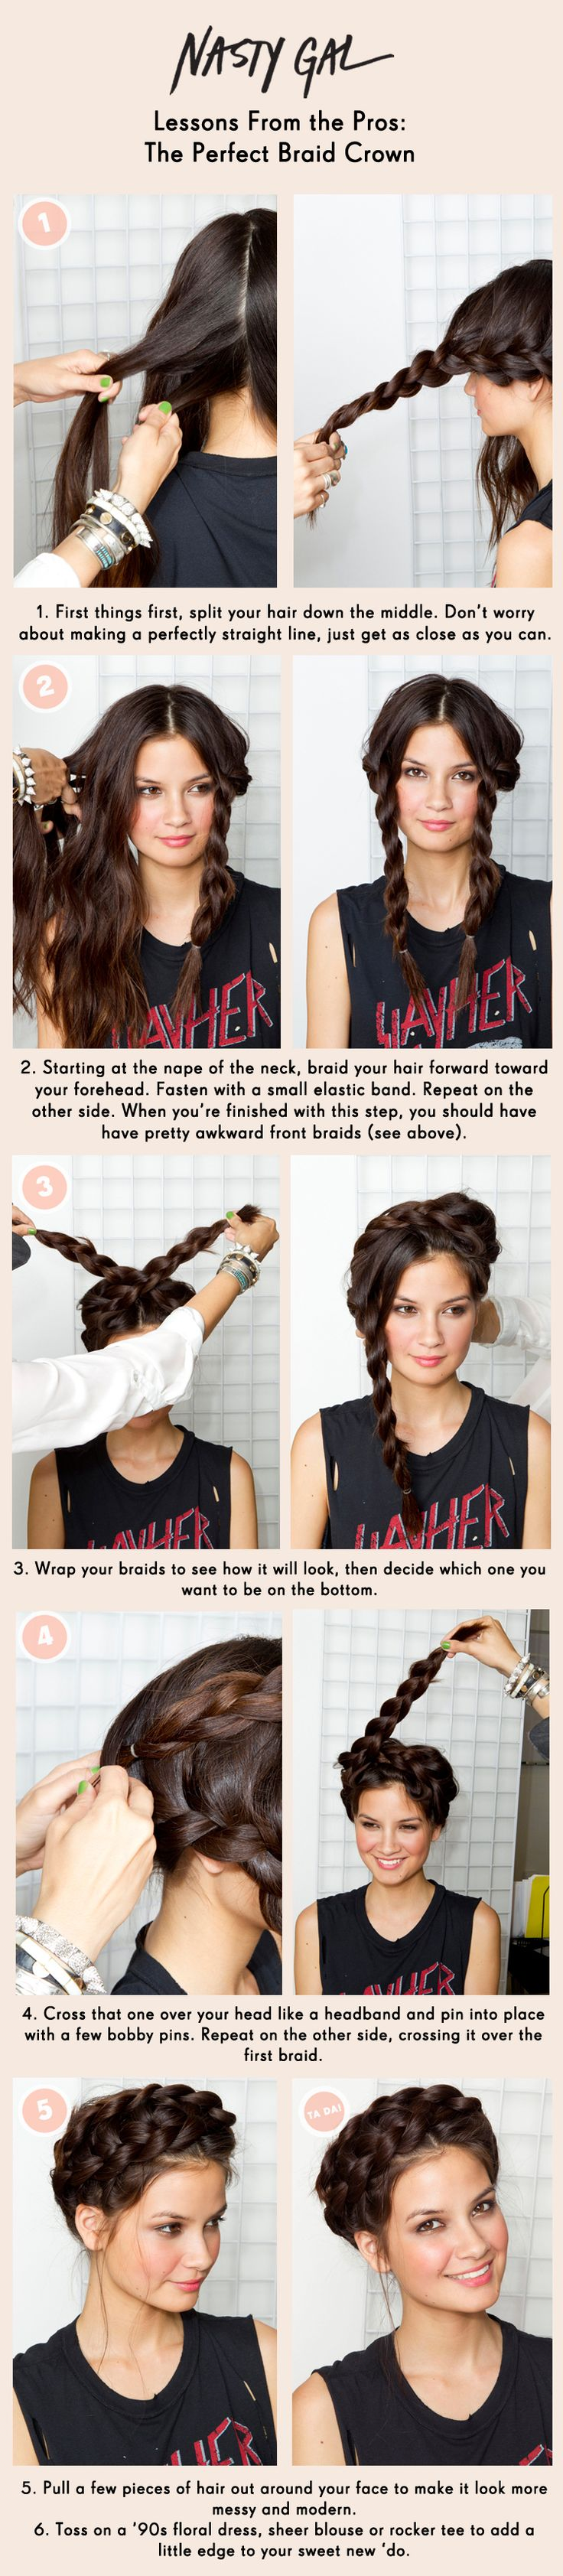 The Perfect Braid Crown